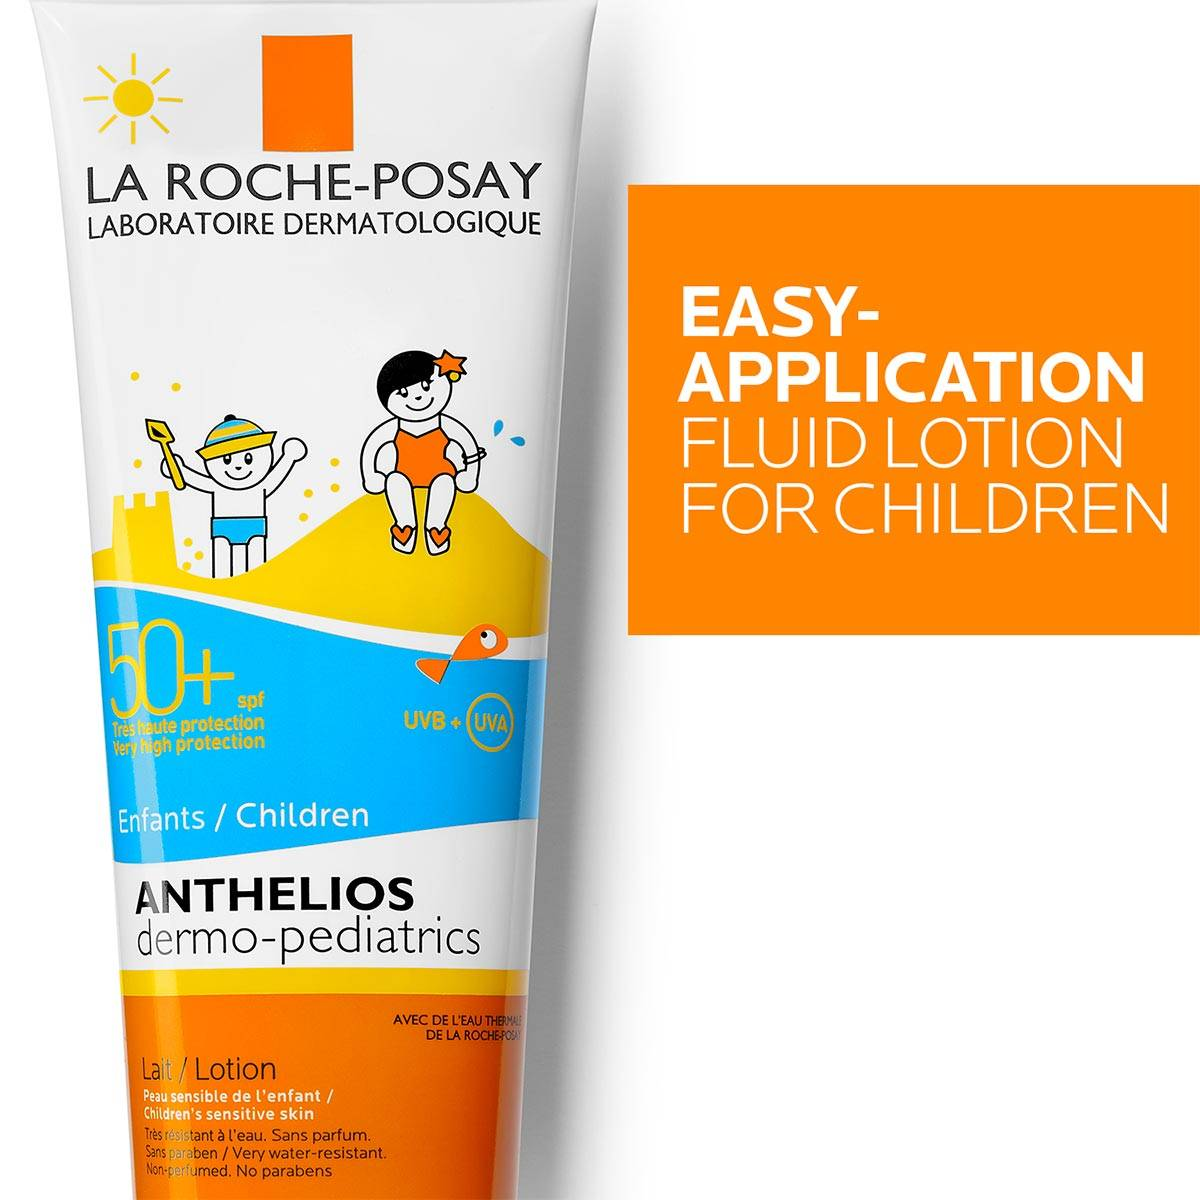 La Roche Posay ProductPage Sun Anthelios DP Spf50 Smooth Lotion 250ml